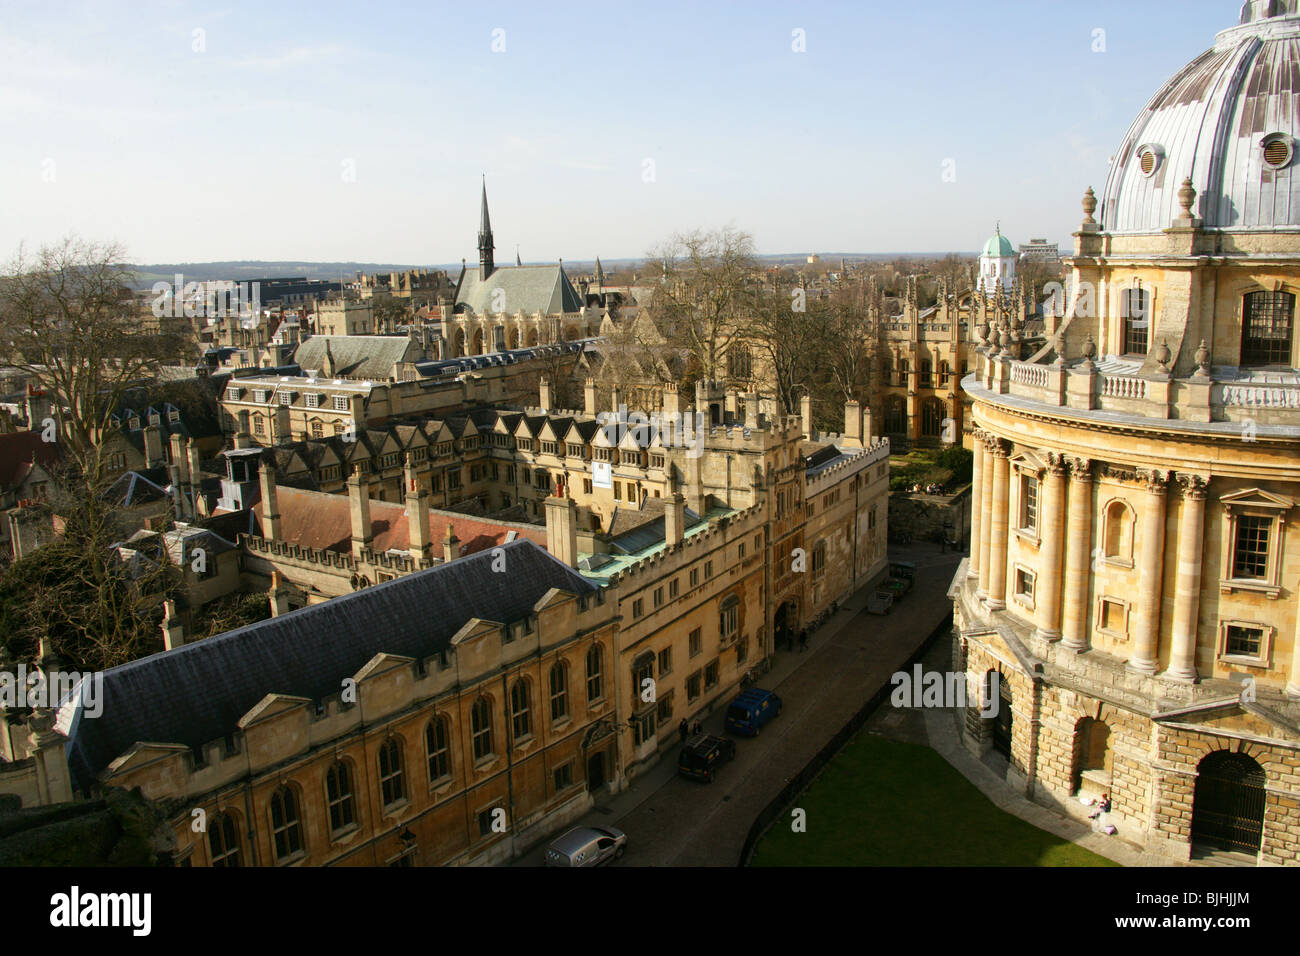 Brasenose College, Exeter College and Chapel, and the Radcliffe Camera, Oxford University, Oxford, Oxfordshire, Stock Photo